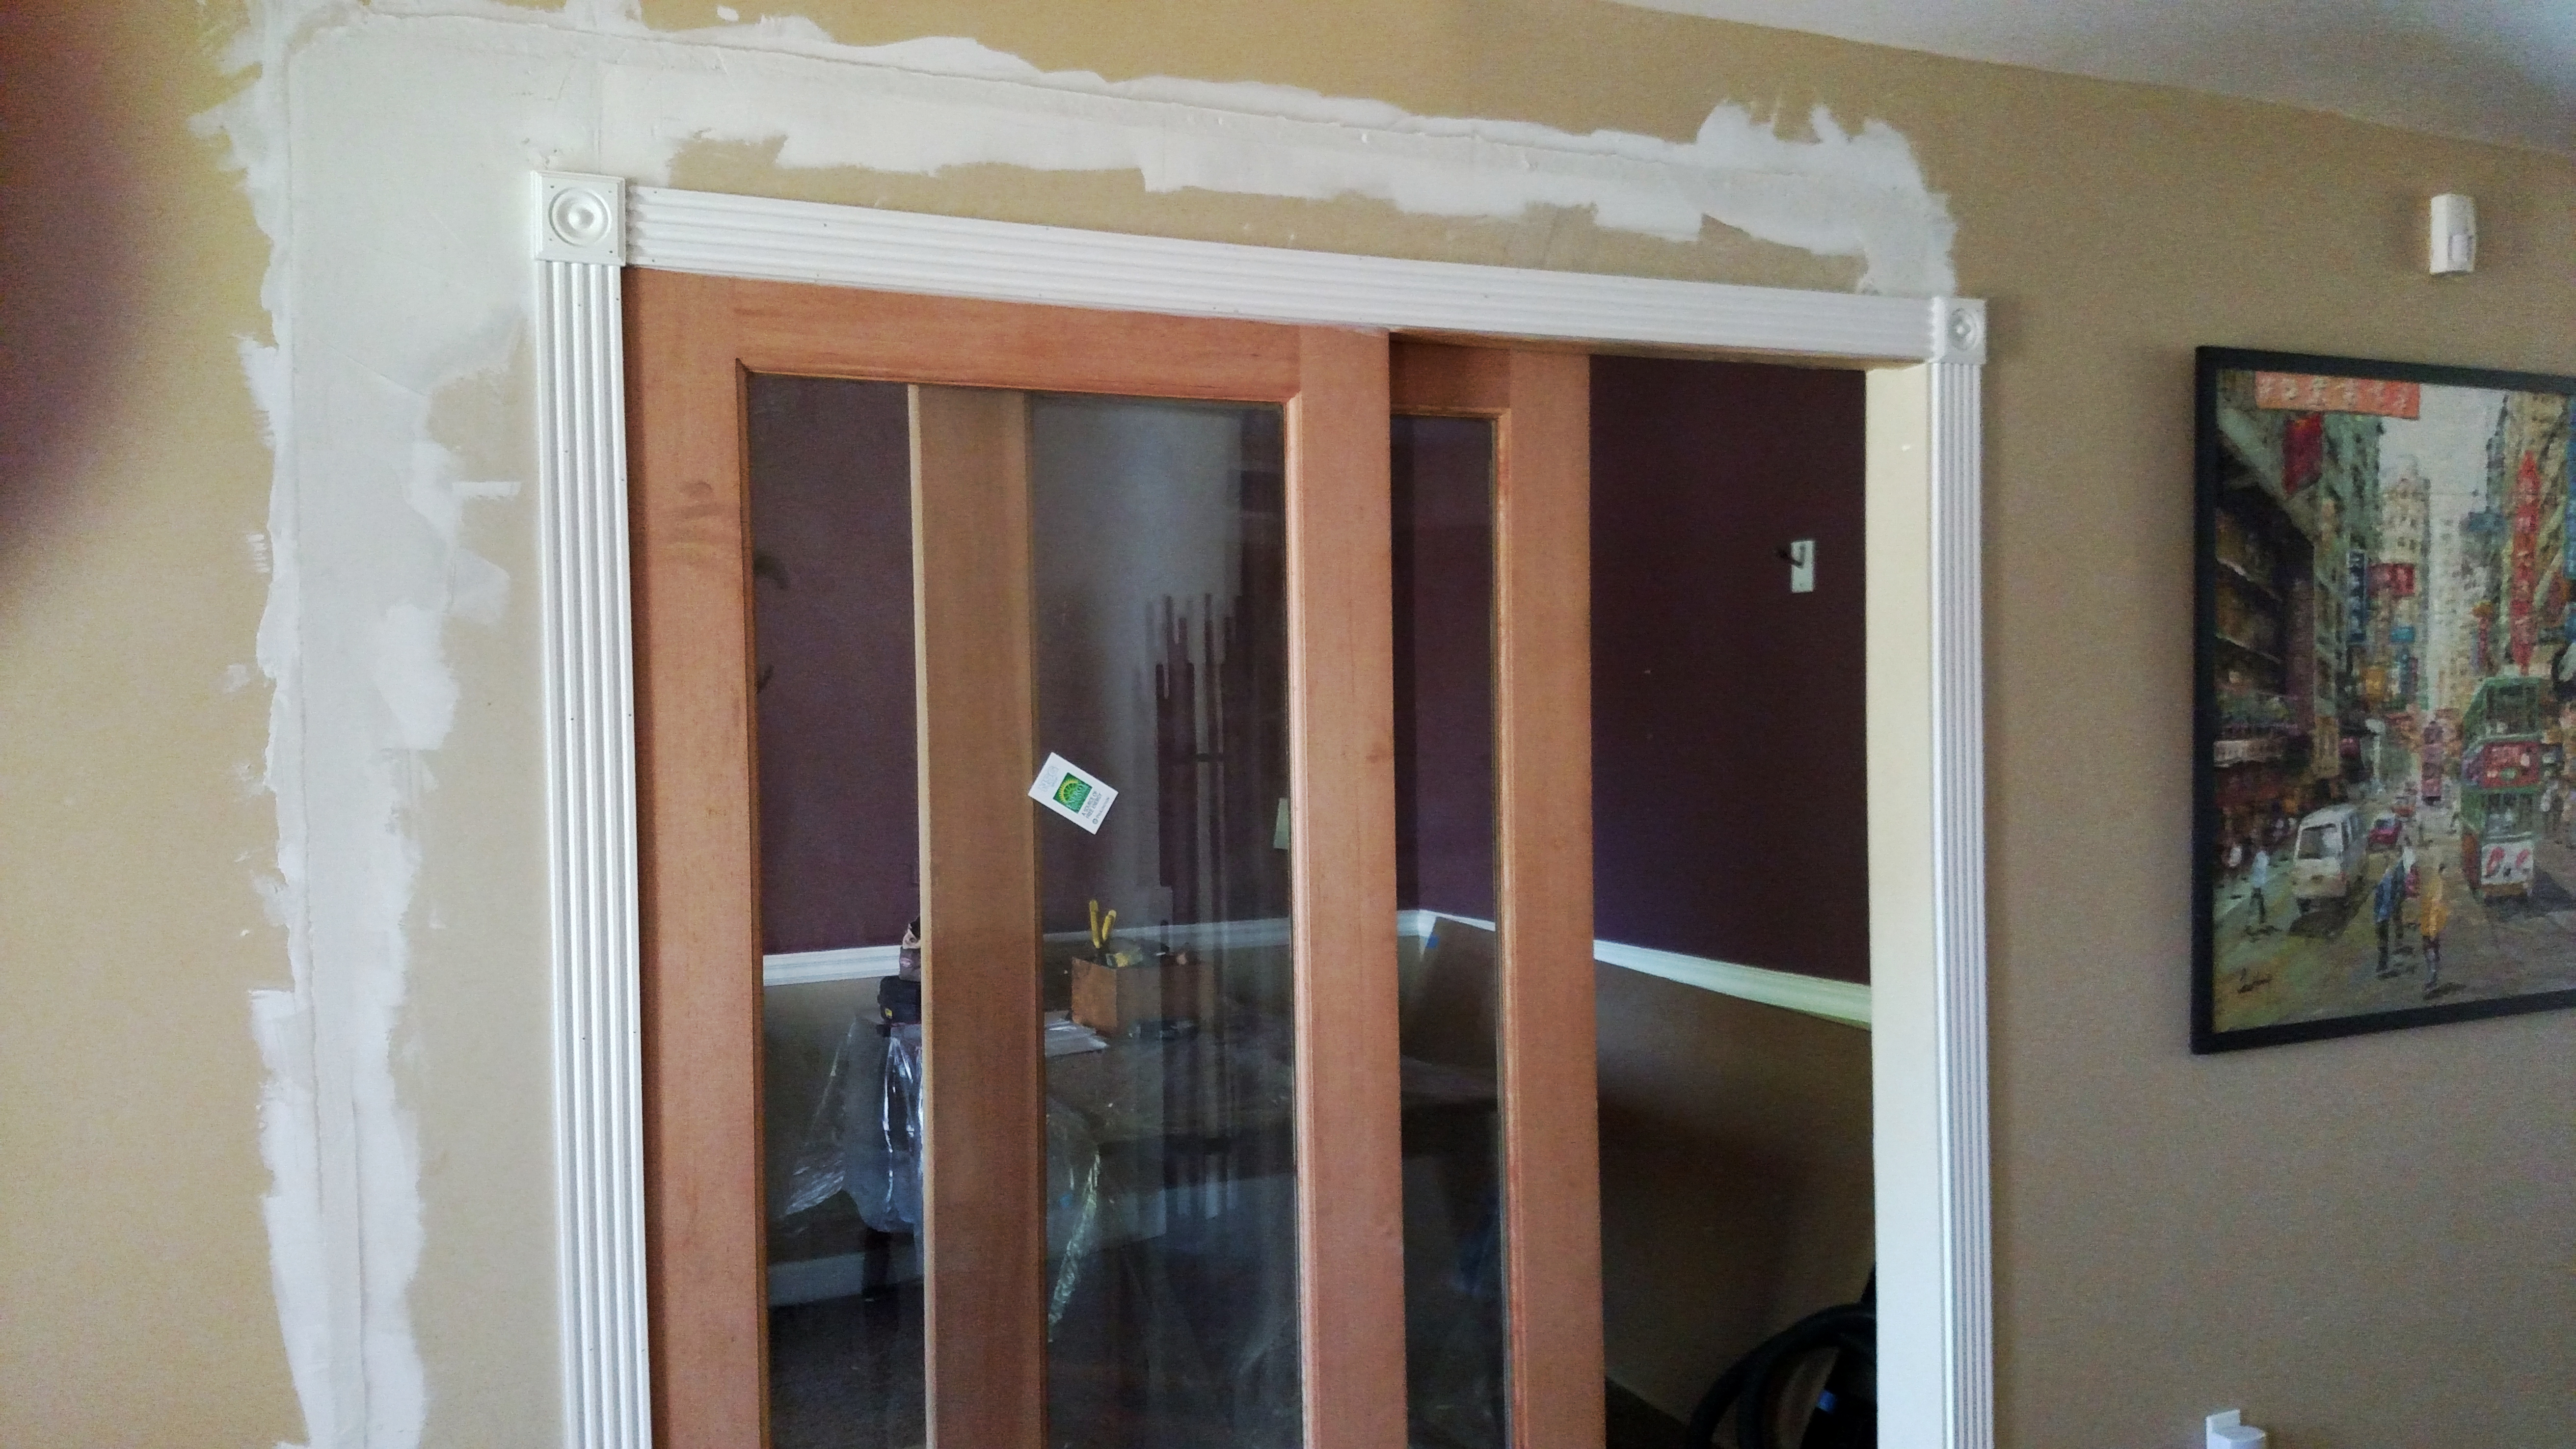 Le Meilleur Interior Sliding French Door And One Fixed Panel Ce Mois Ci